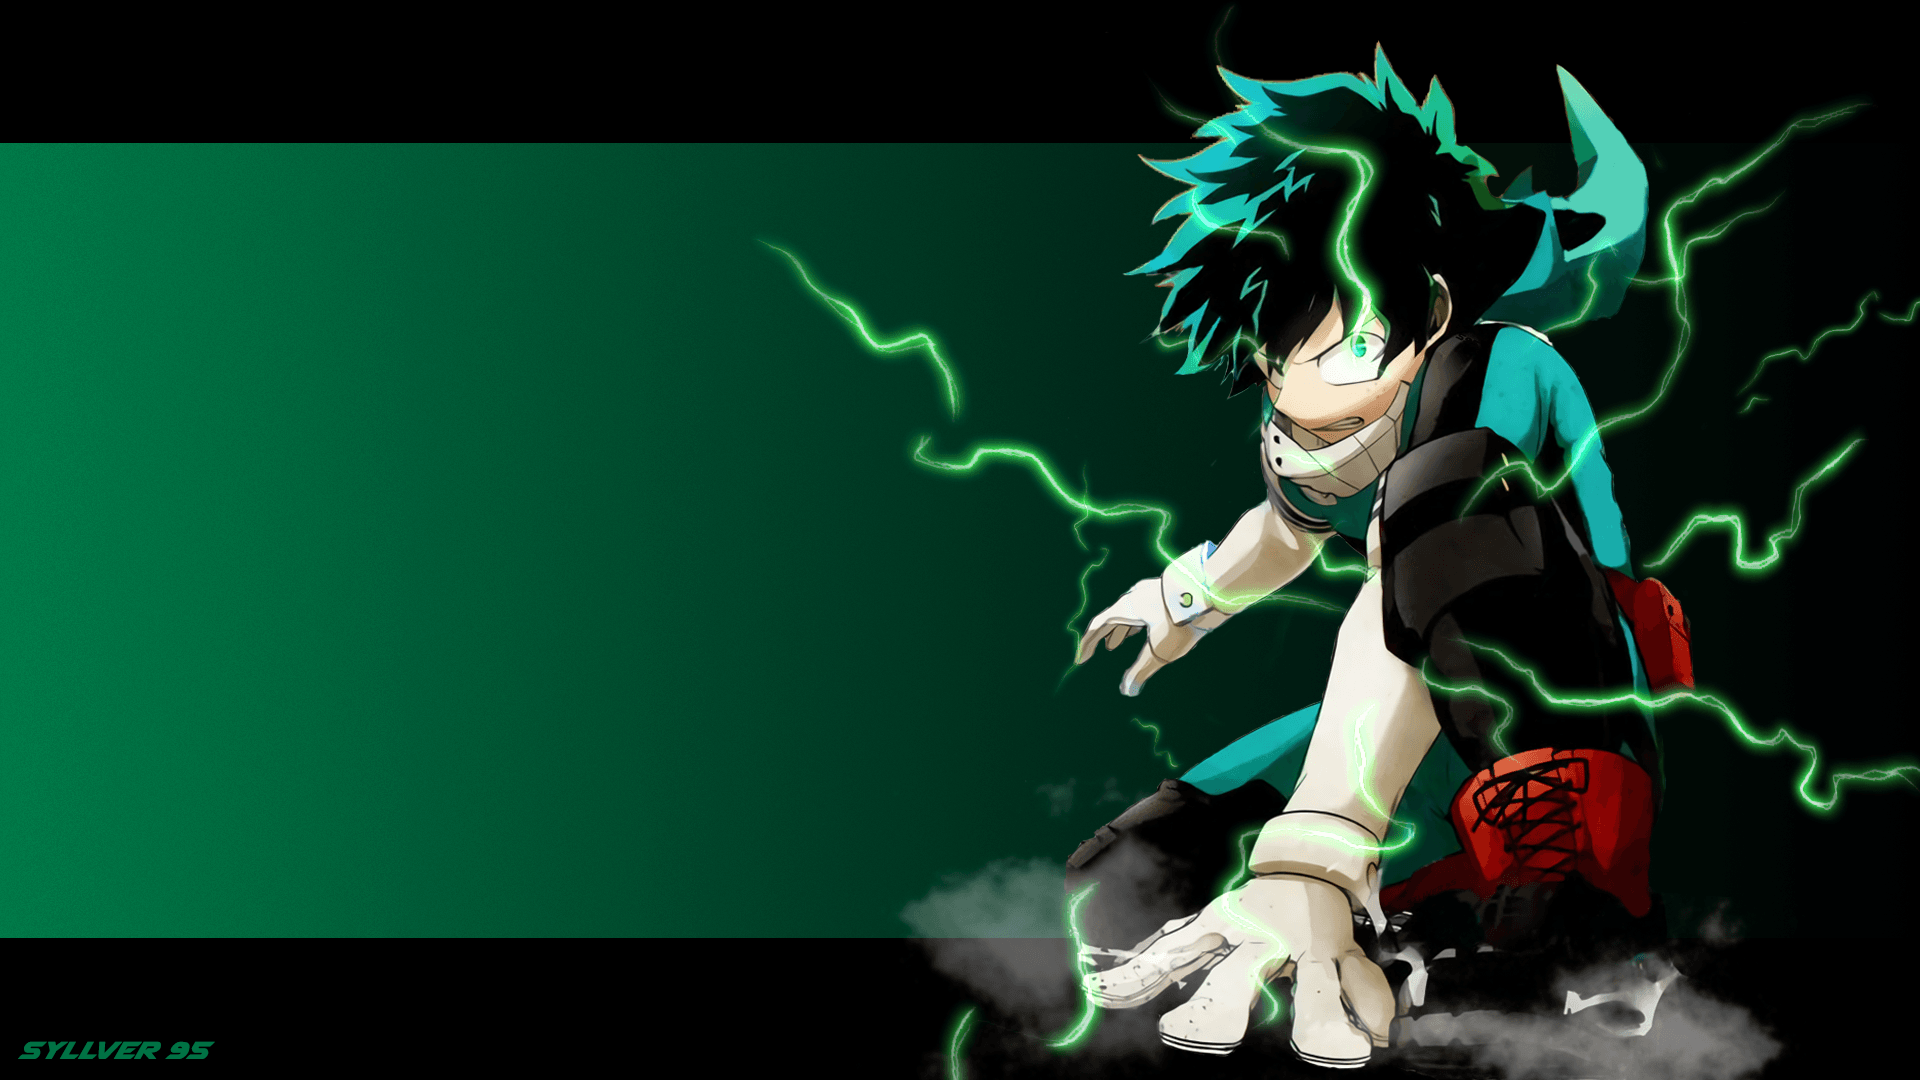 Deku Computer Wallpapers Top Free Deku Computer Backgrounds